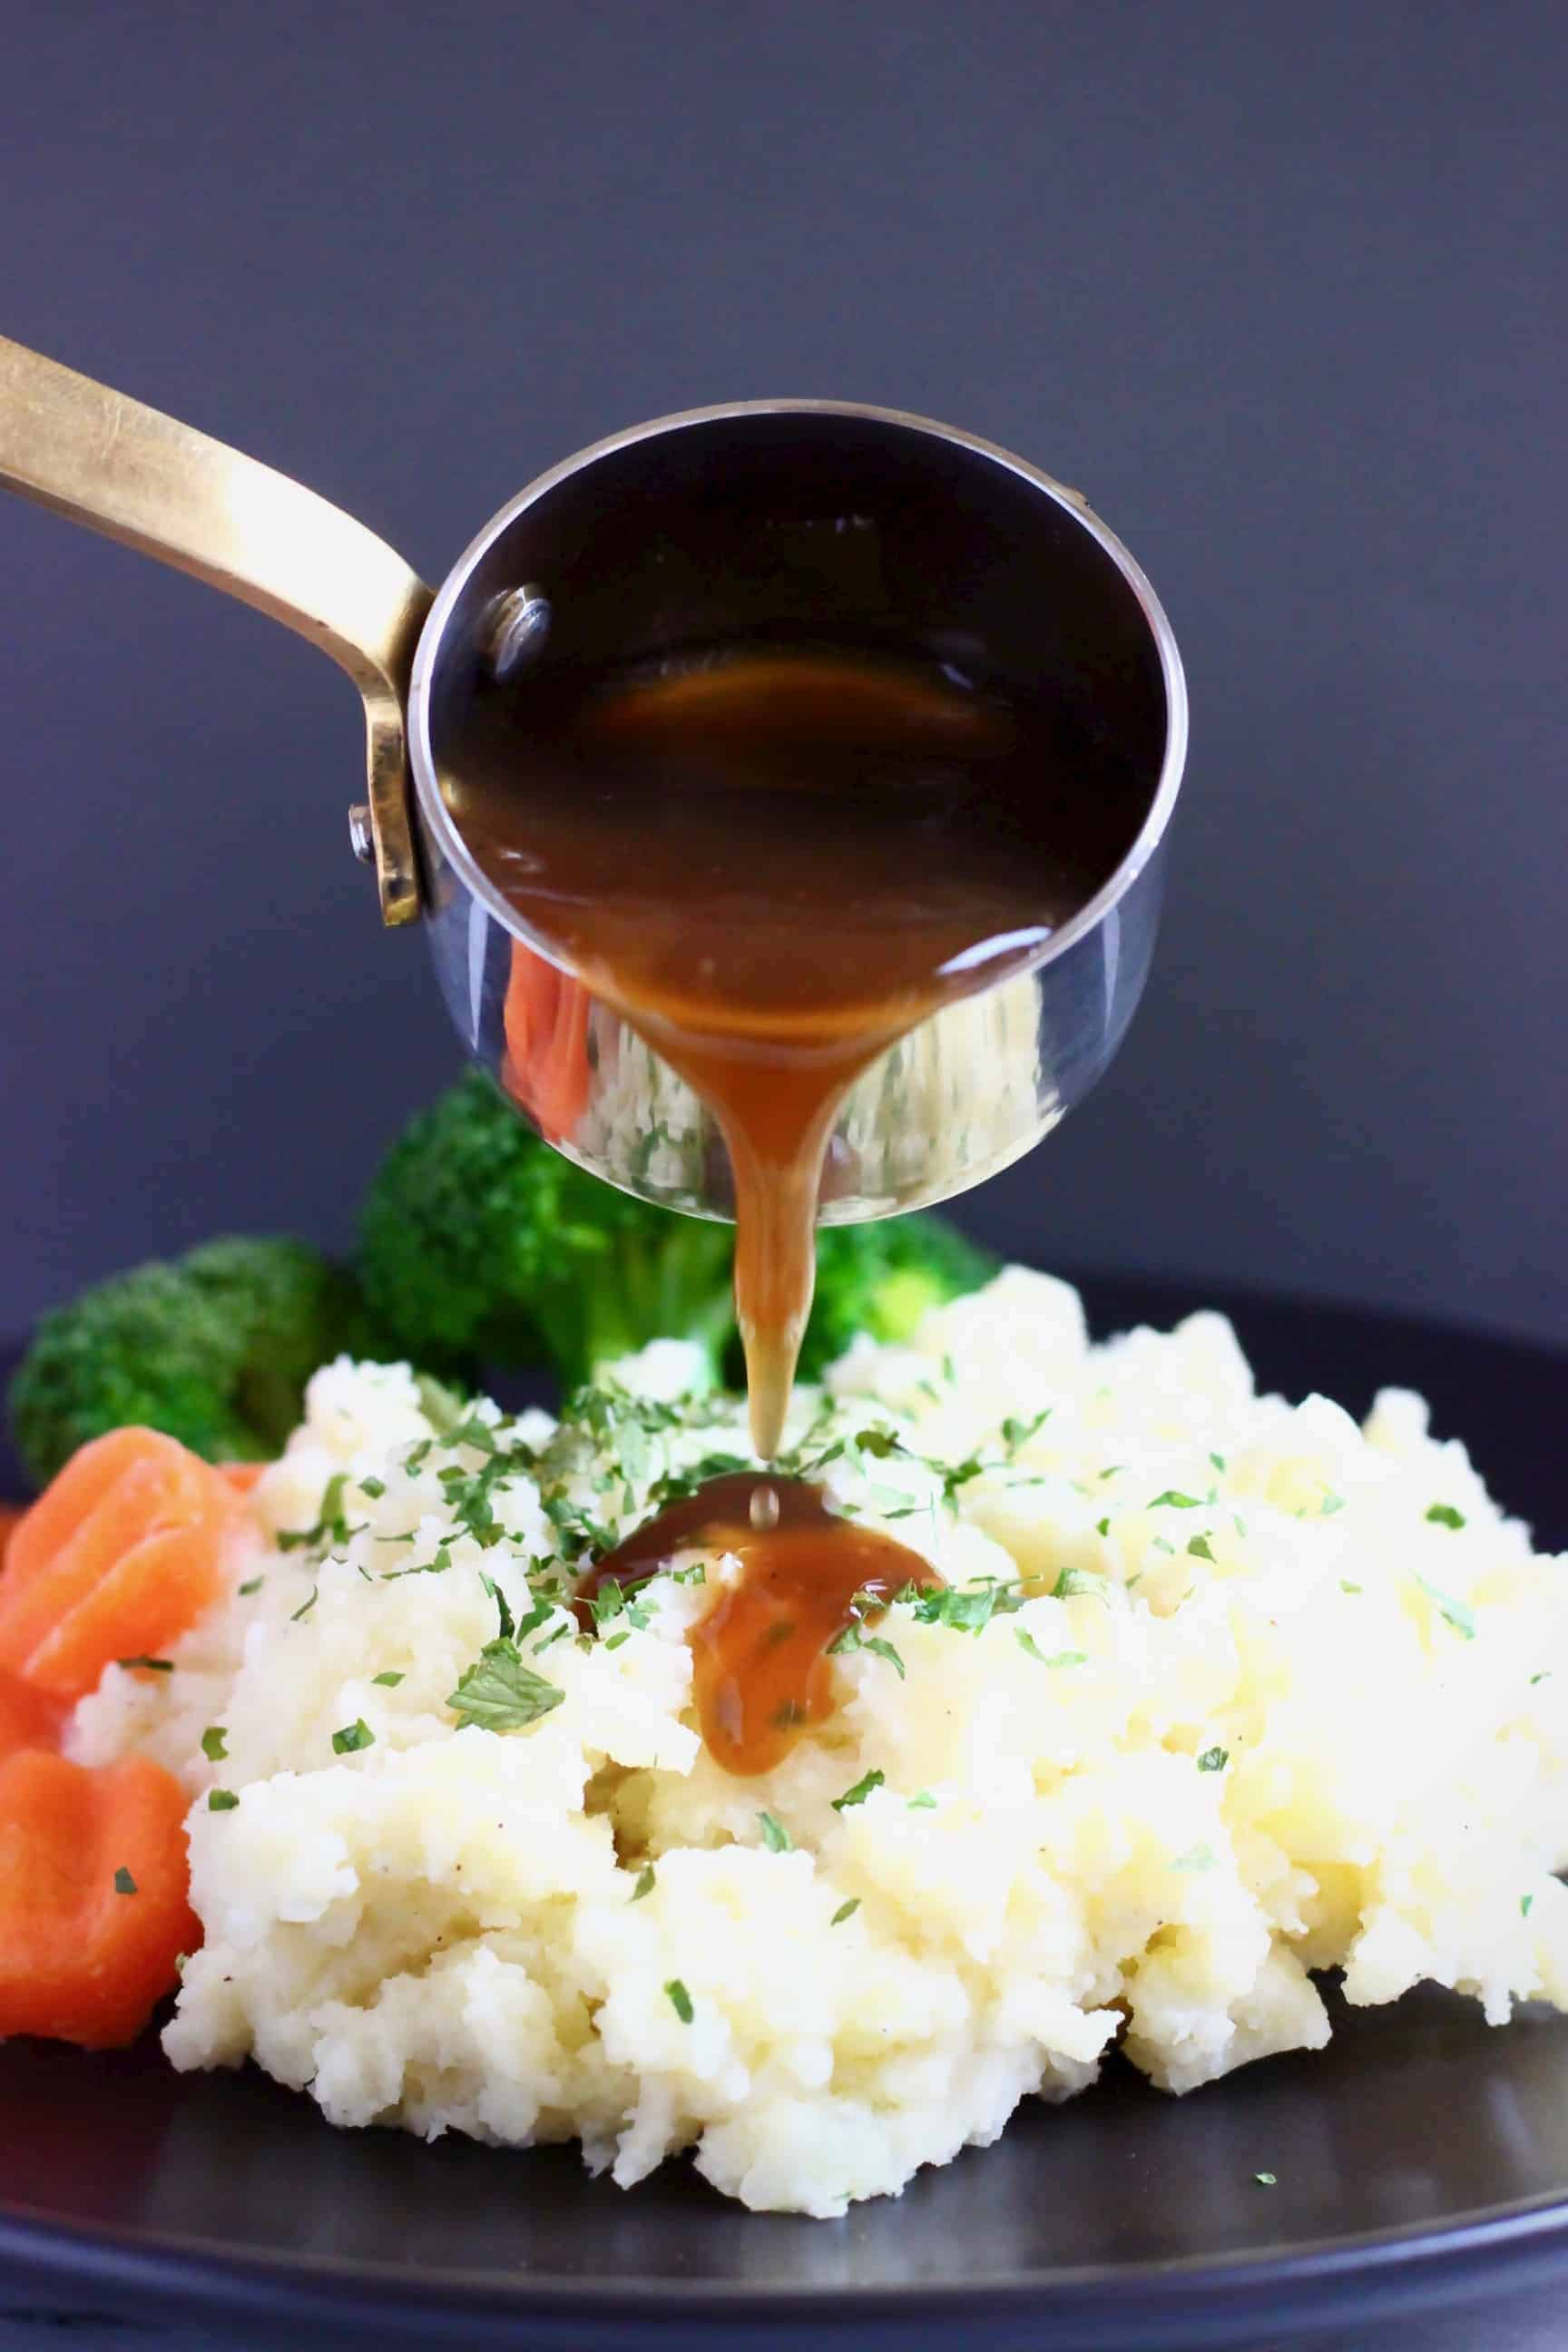 A pile of mashed potatoes topped with green herbs with sliced carrots and broccoli on a black plate with brown gravy being poured over in a silver saucepan